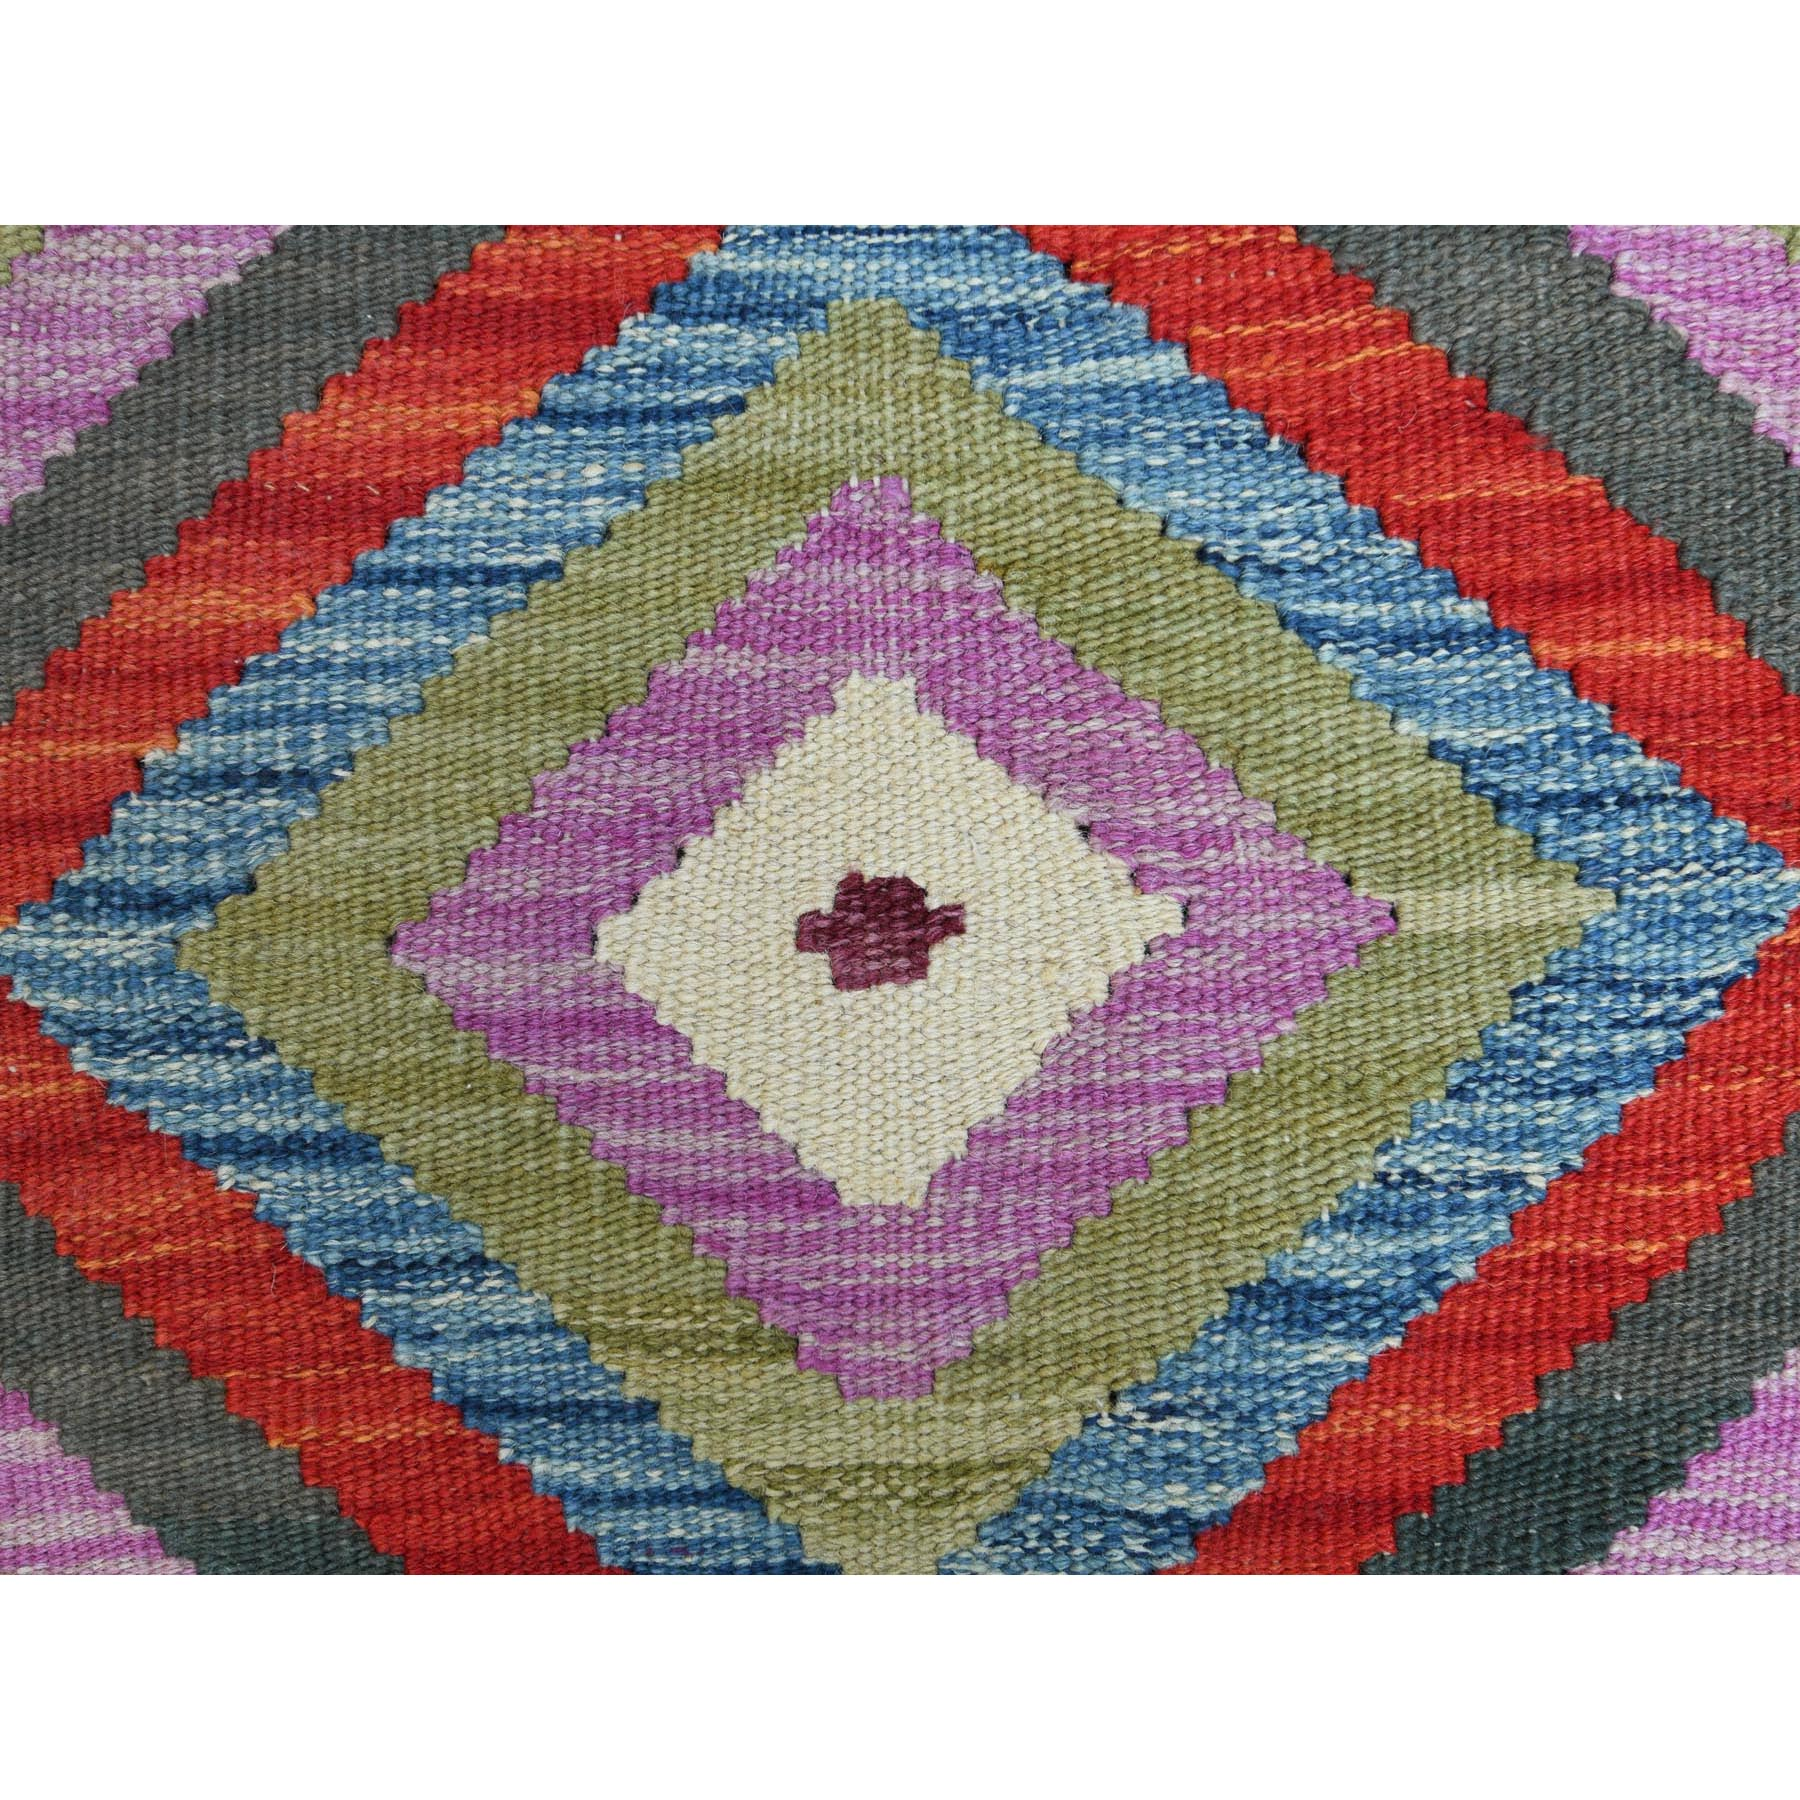 "2'7""x3'7"" Colorful Afghan Kilim Reversible, Soft To The Touch Wool Pile Hand Woven Oriental Rug"